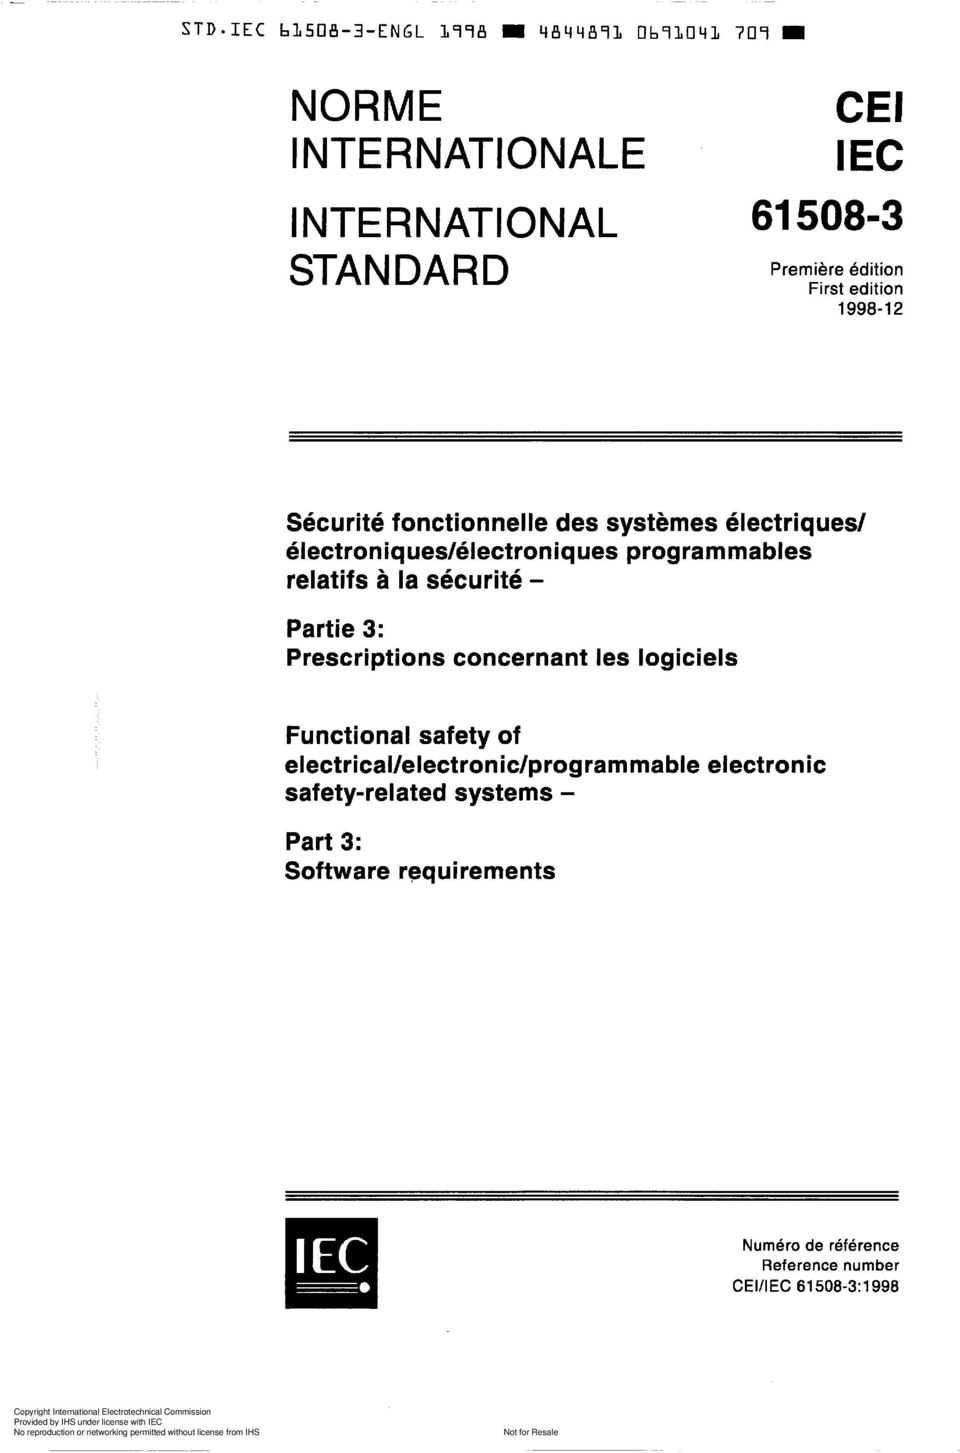 electrical/electronic/programmable electronic safety-related systems - Part 3: Software requirements Numéro de référence eference number CEMEC 61